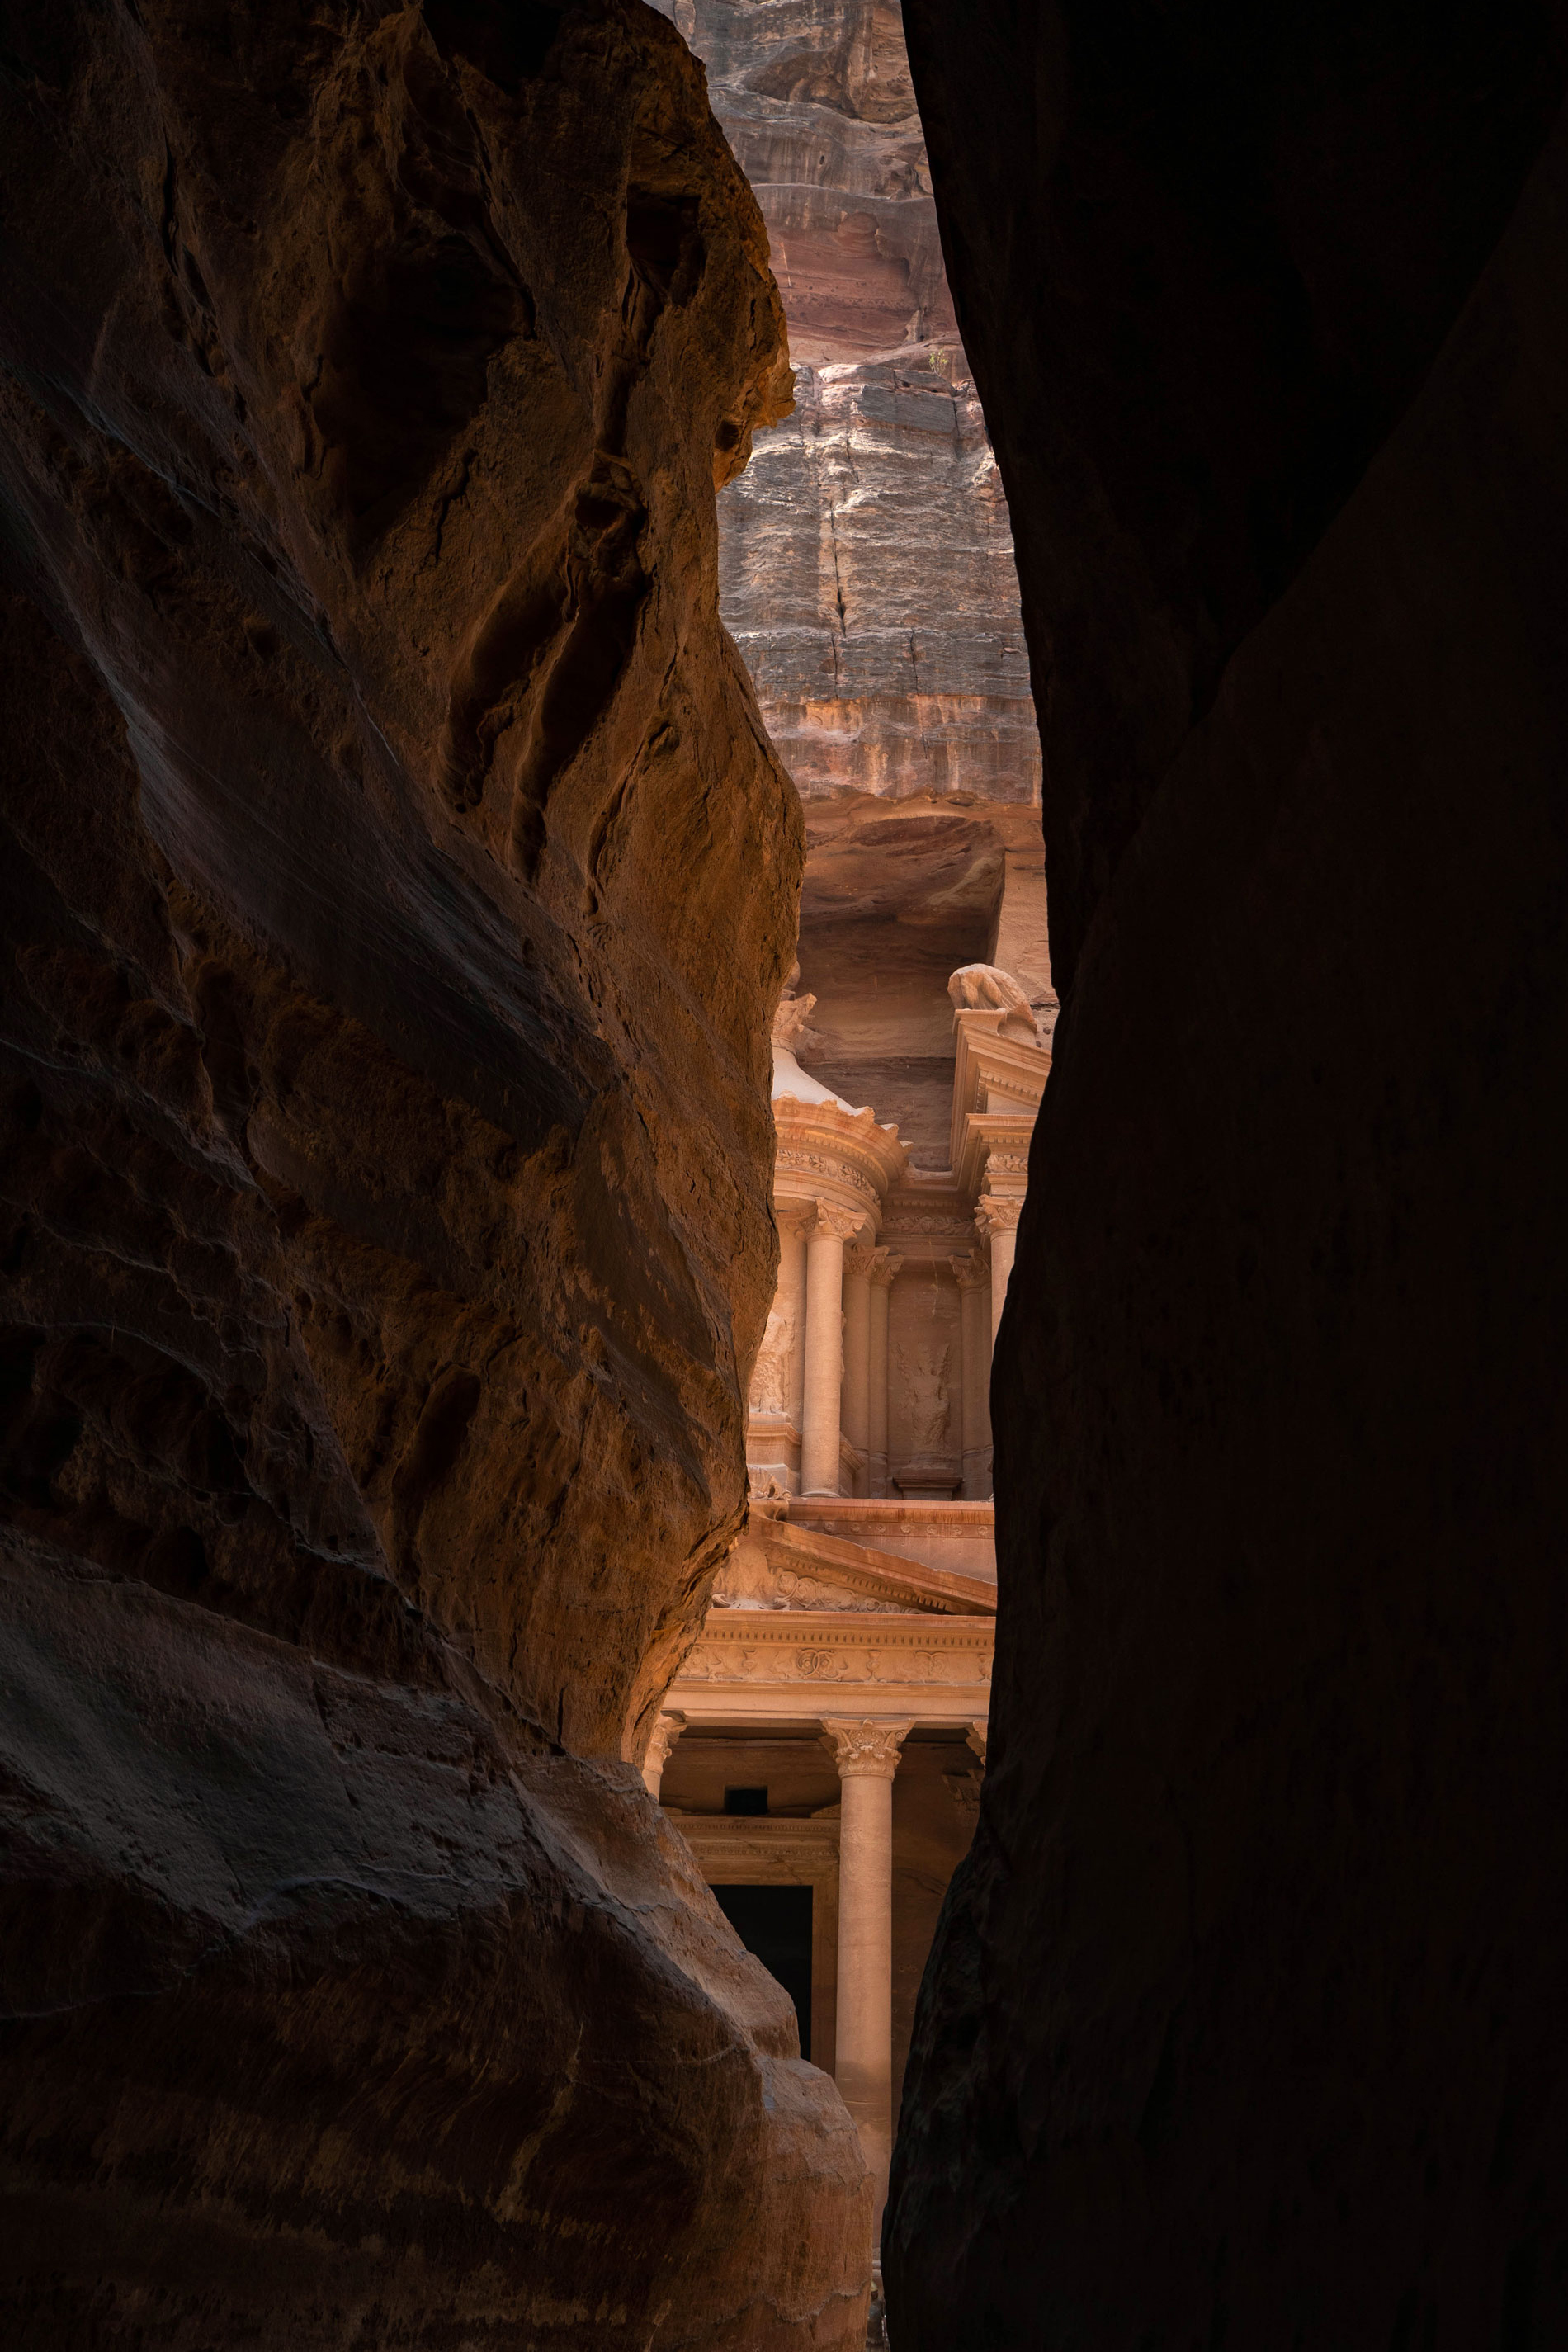 petra-pink-city-siq-trail-jordan-travel.jpg